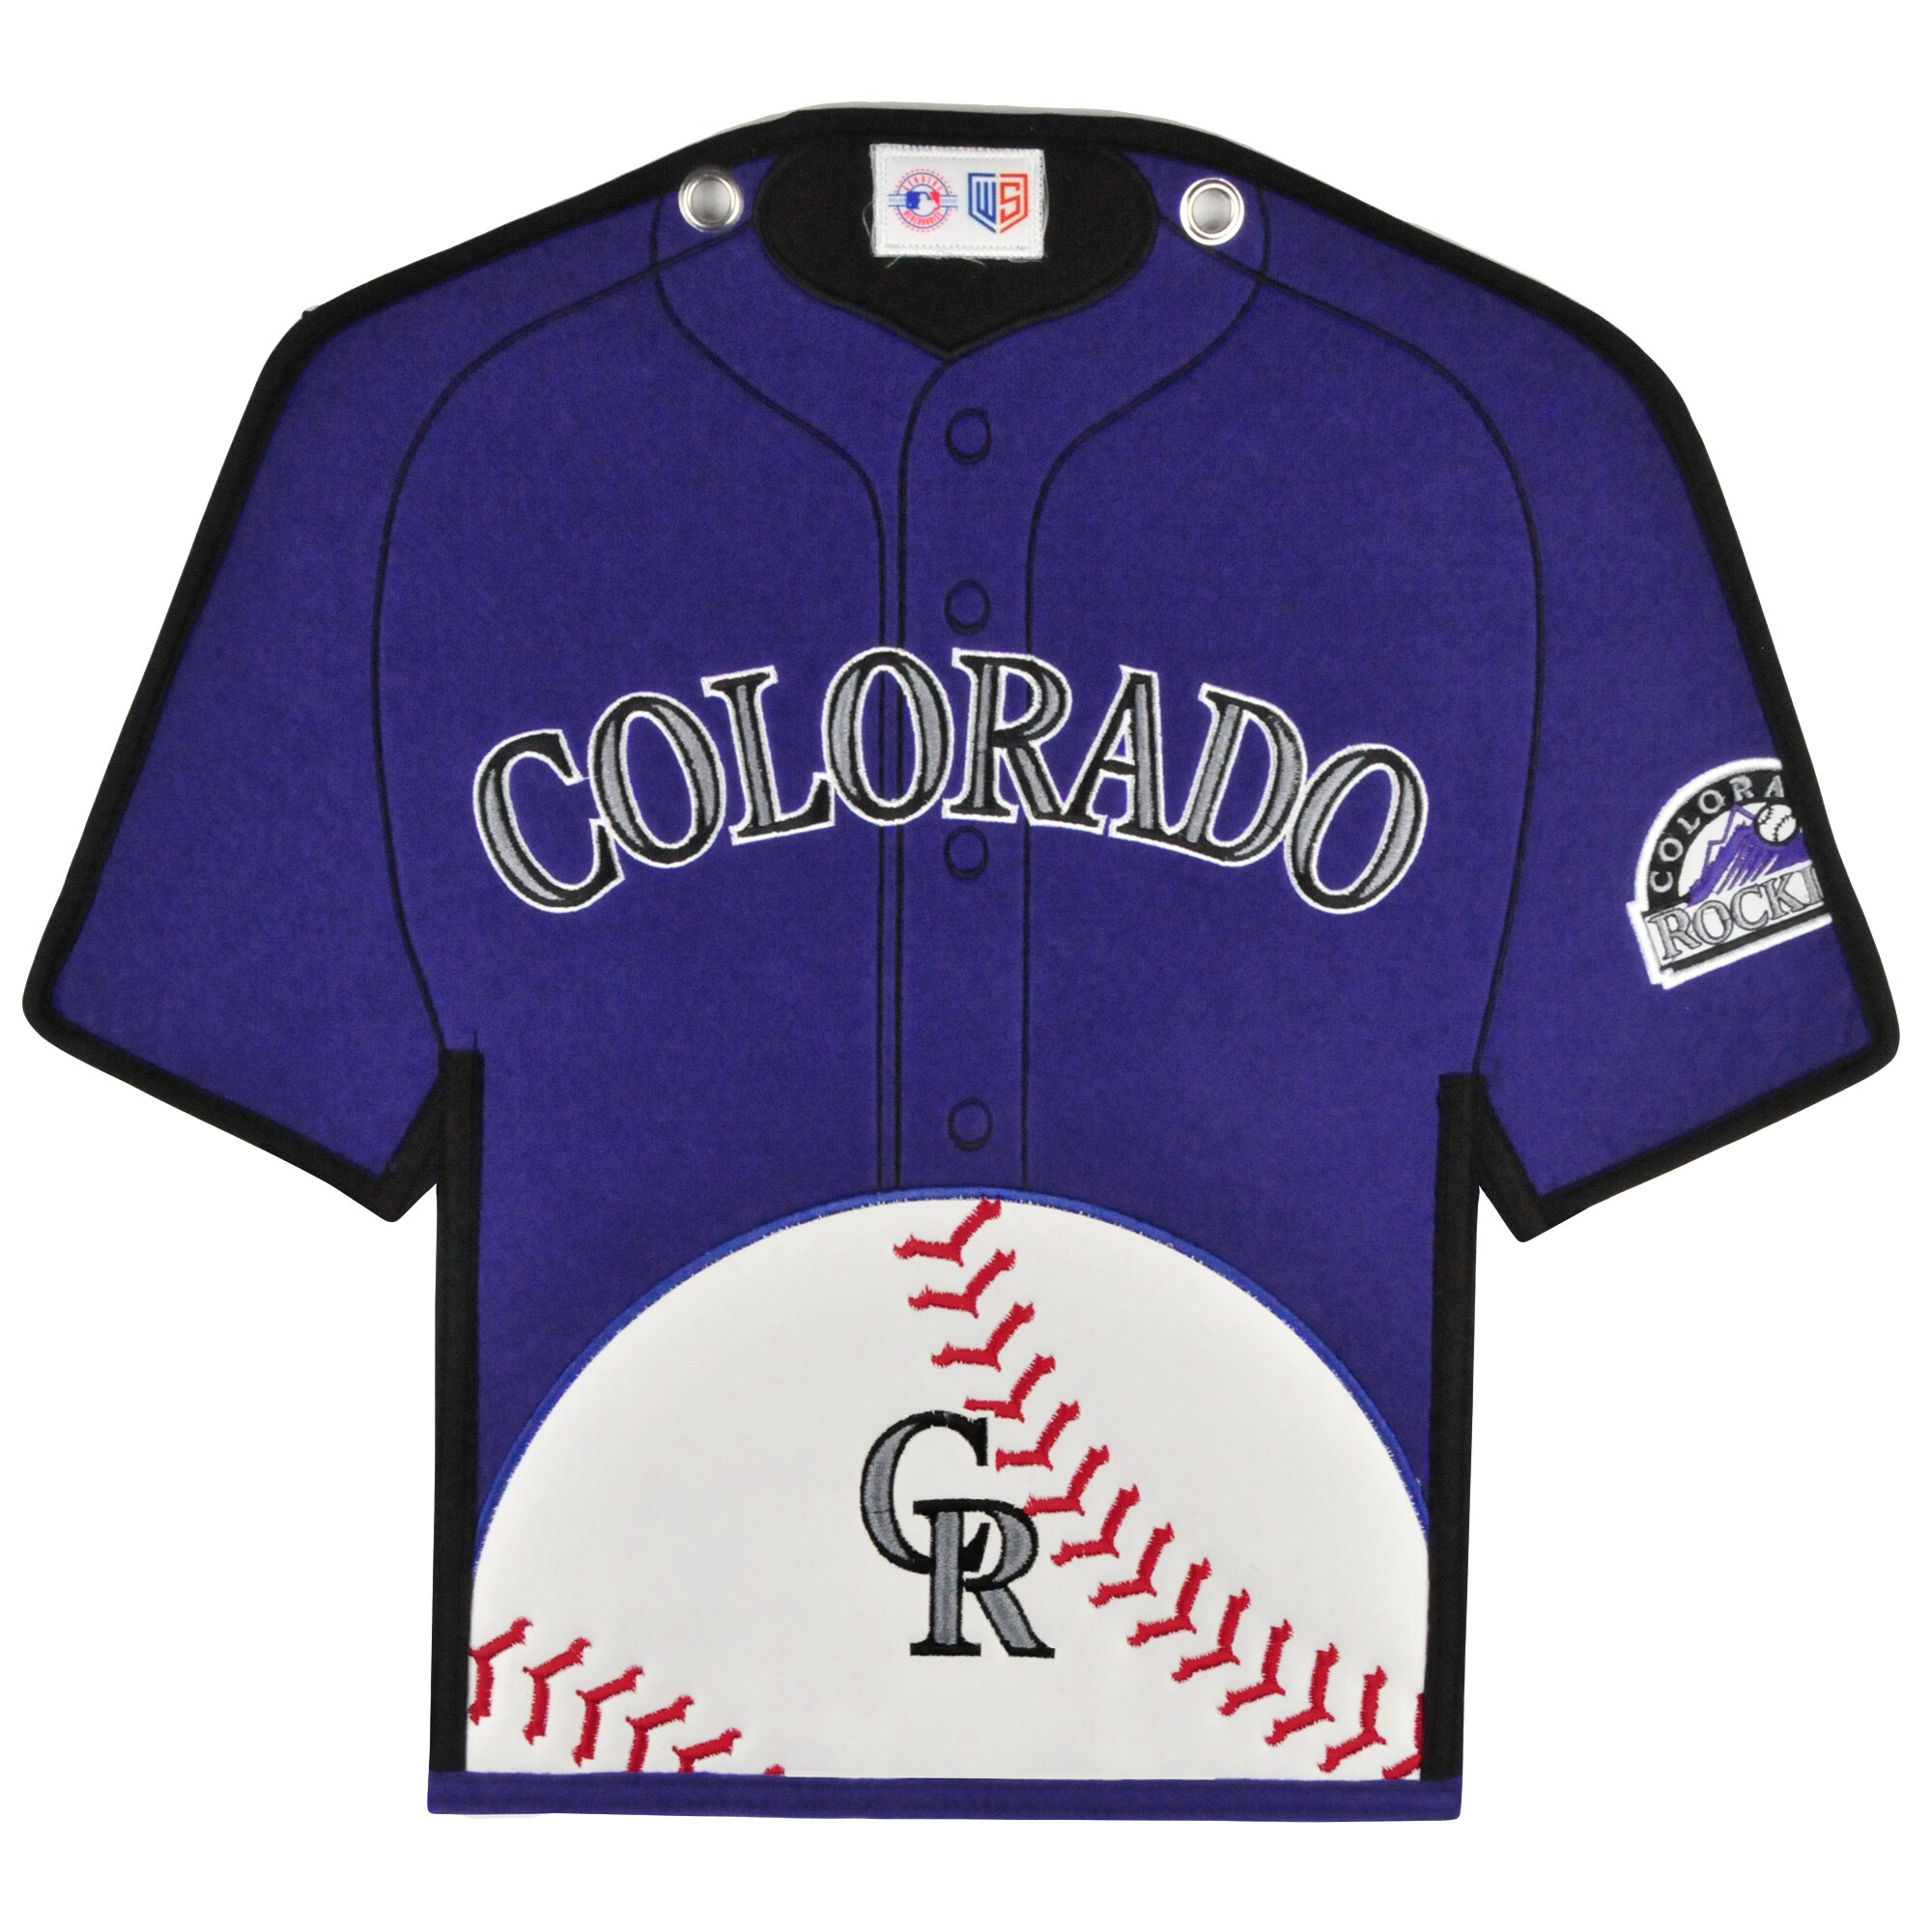 Colorado Rockies 14'' x 22'' Jersey Traditions Banner - Purple/Black